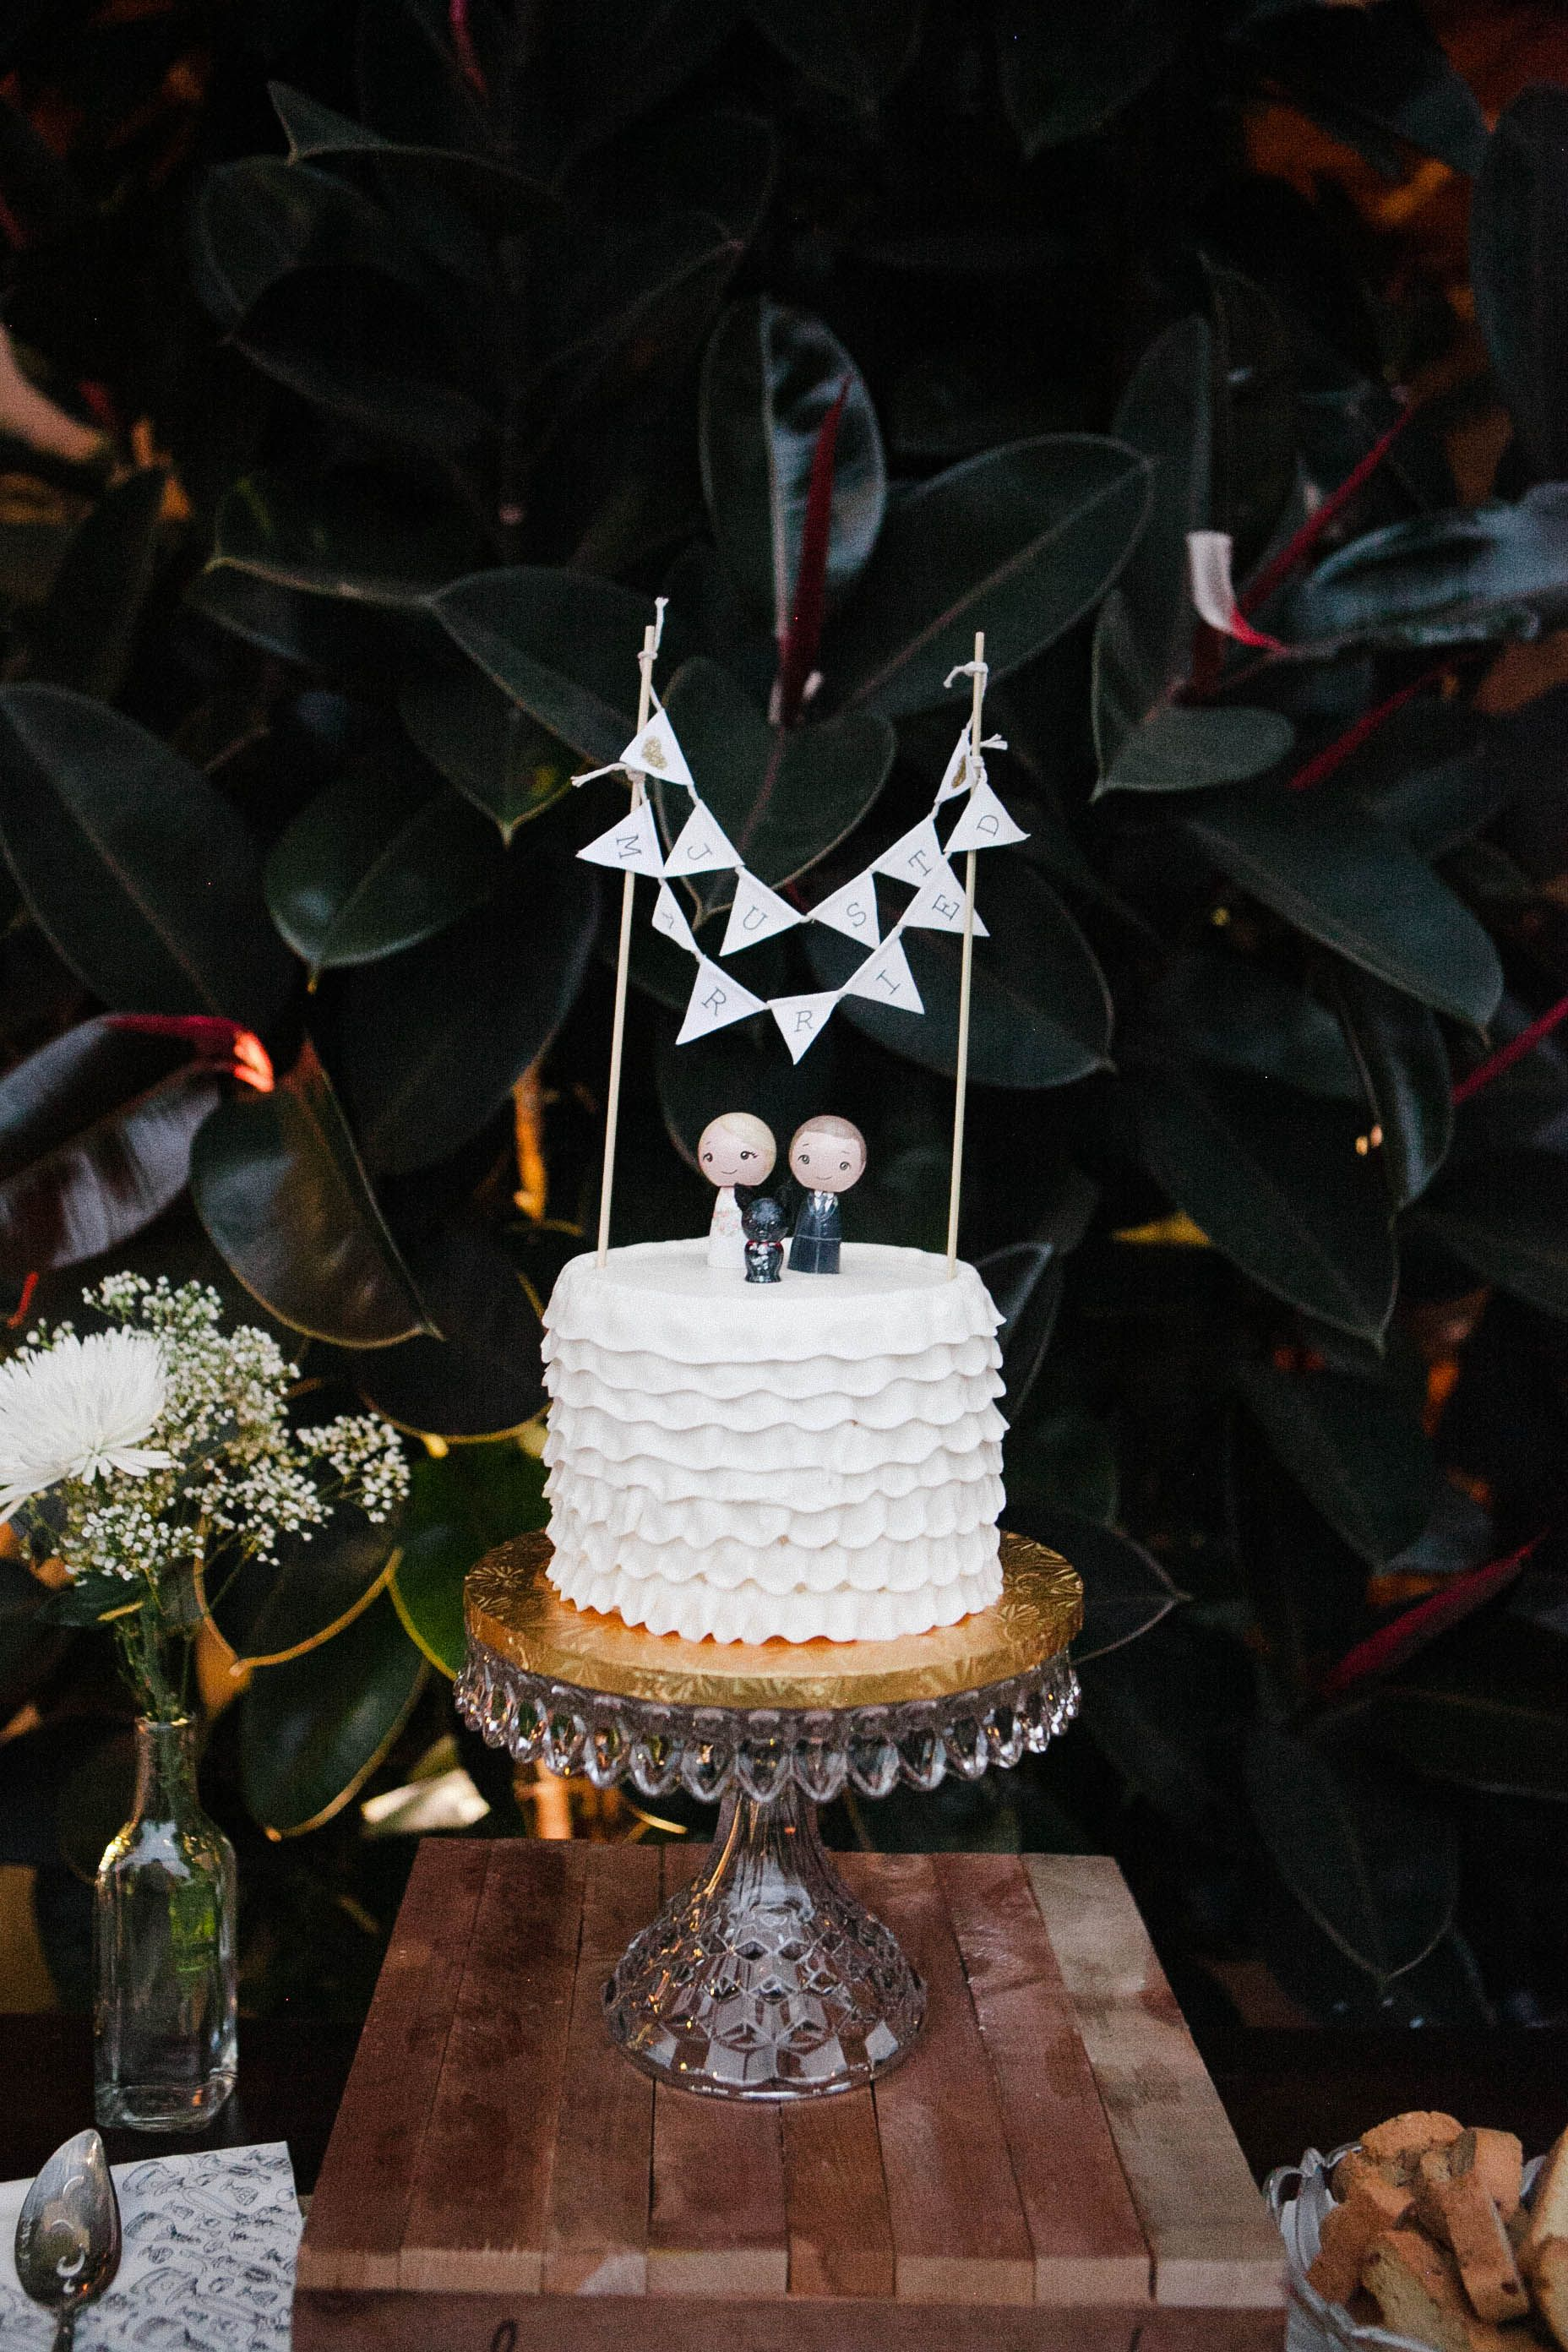 How much does a wedding cake cost? Wedding cakes